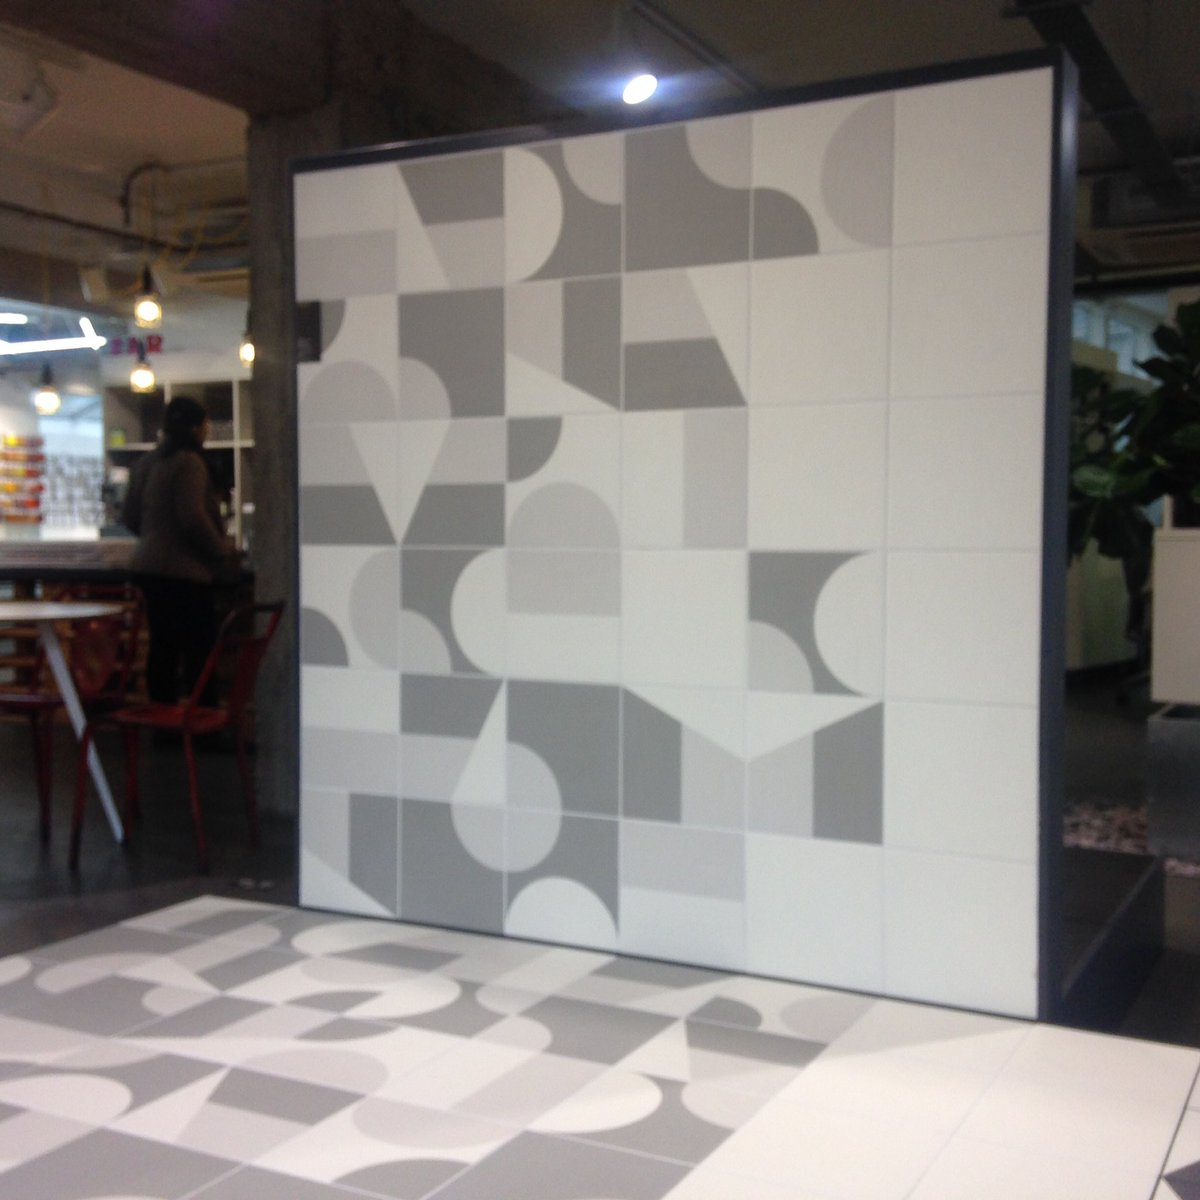 Domus on twitter our mutinaceramics patterned tile collection domus on twitter our mutinaceramics patterned tile collection puzzle is now installed in our clerkenwell showroom design by barberosgerby tiles dailygadgetfo Choice Image